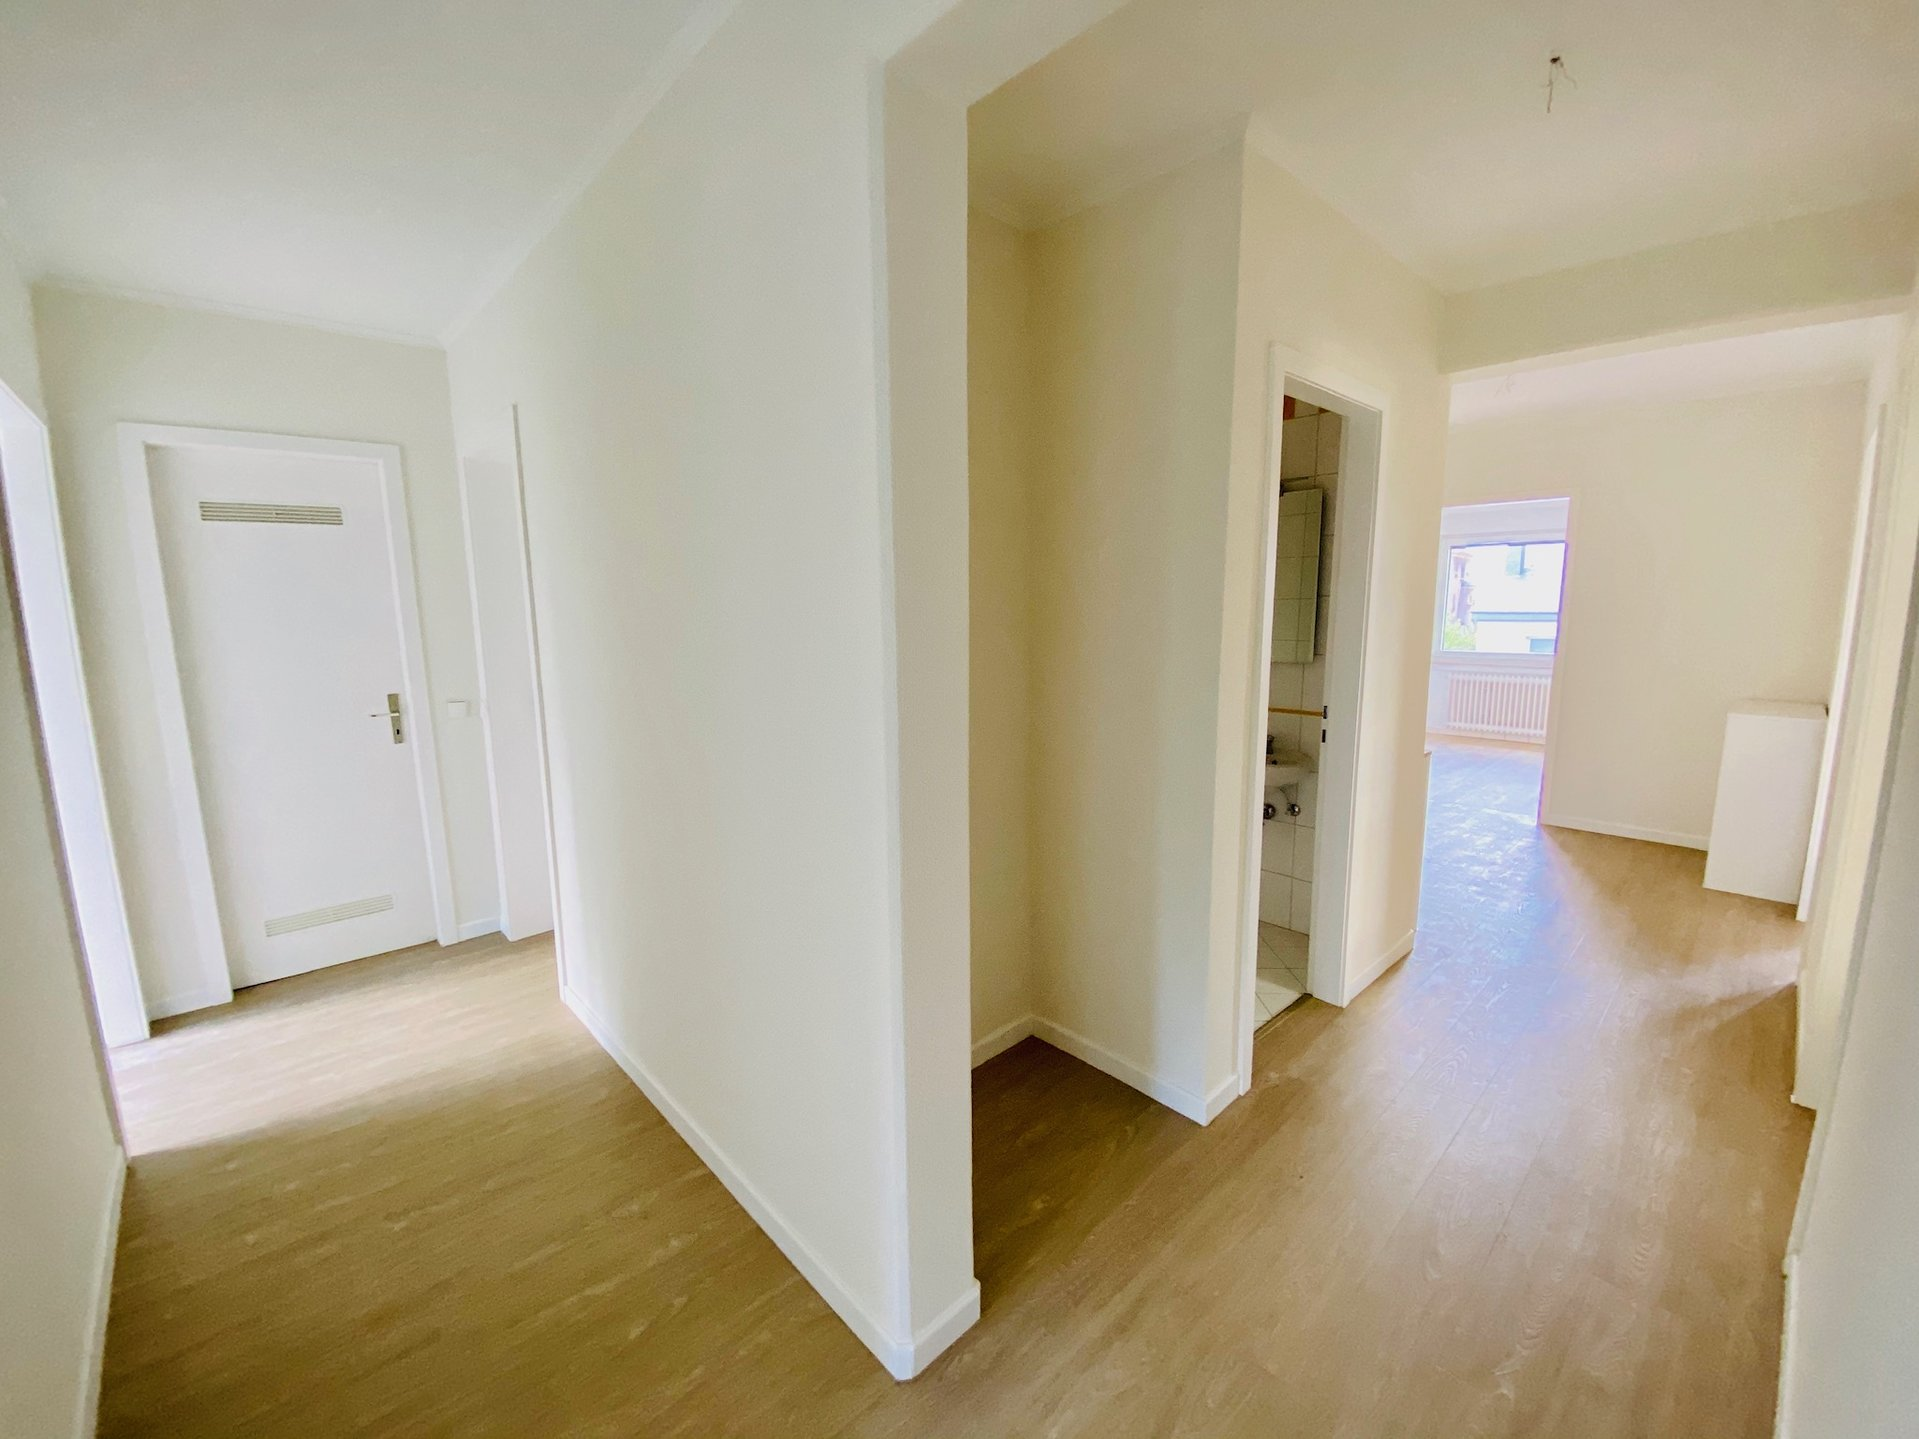 Appartement 3 chambres à Luxembourg-Gasperich